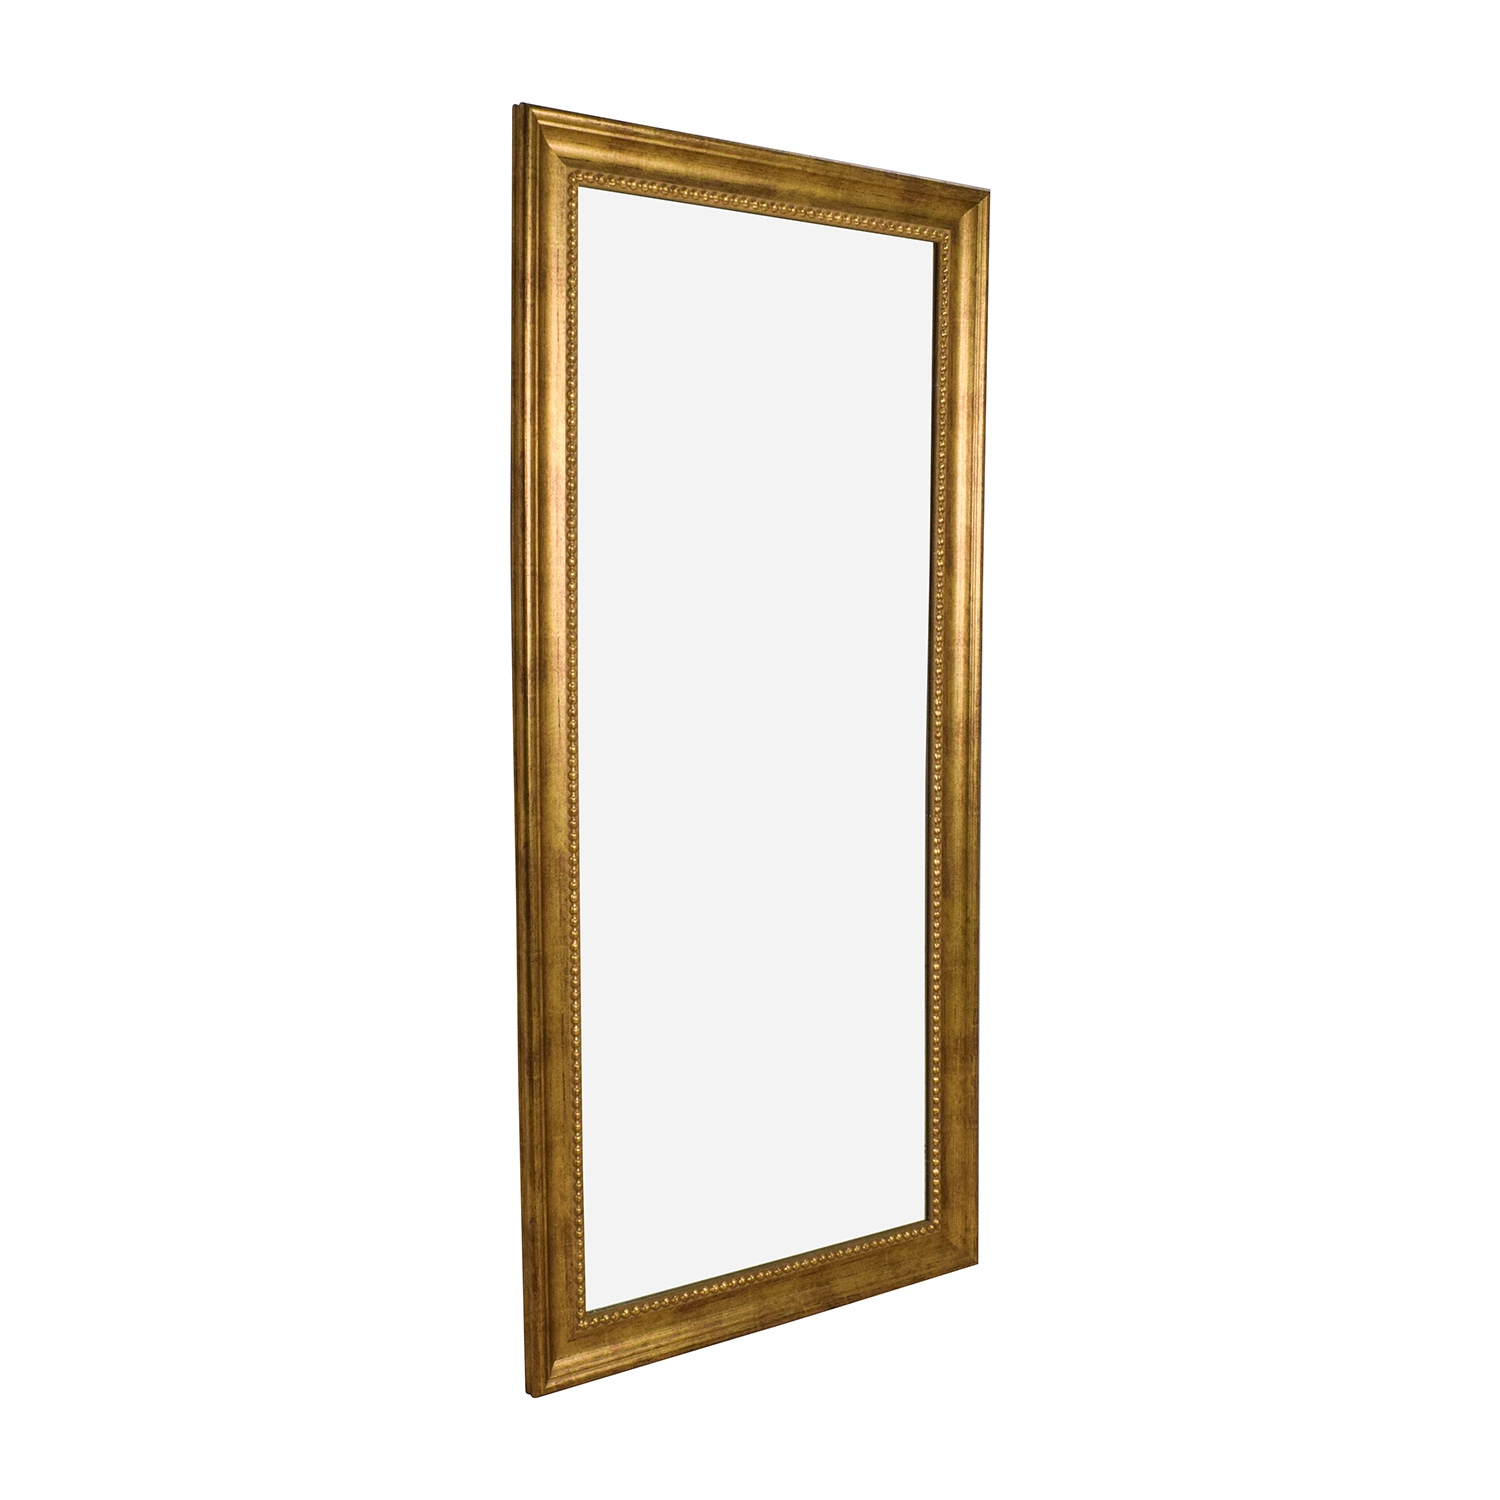 51 Off Gold Frame Standing Mirror Decor Intended For Gold Standing Mirror (View 3 of 15)